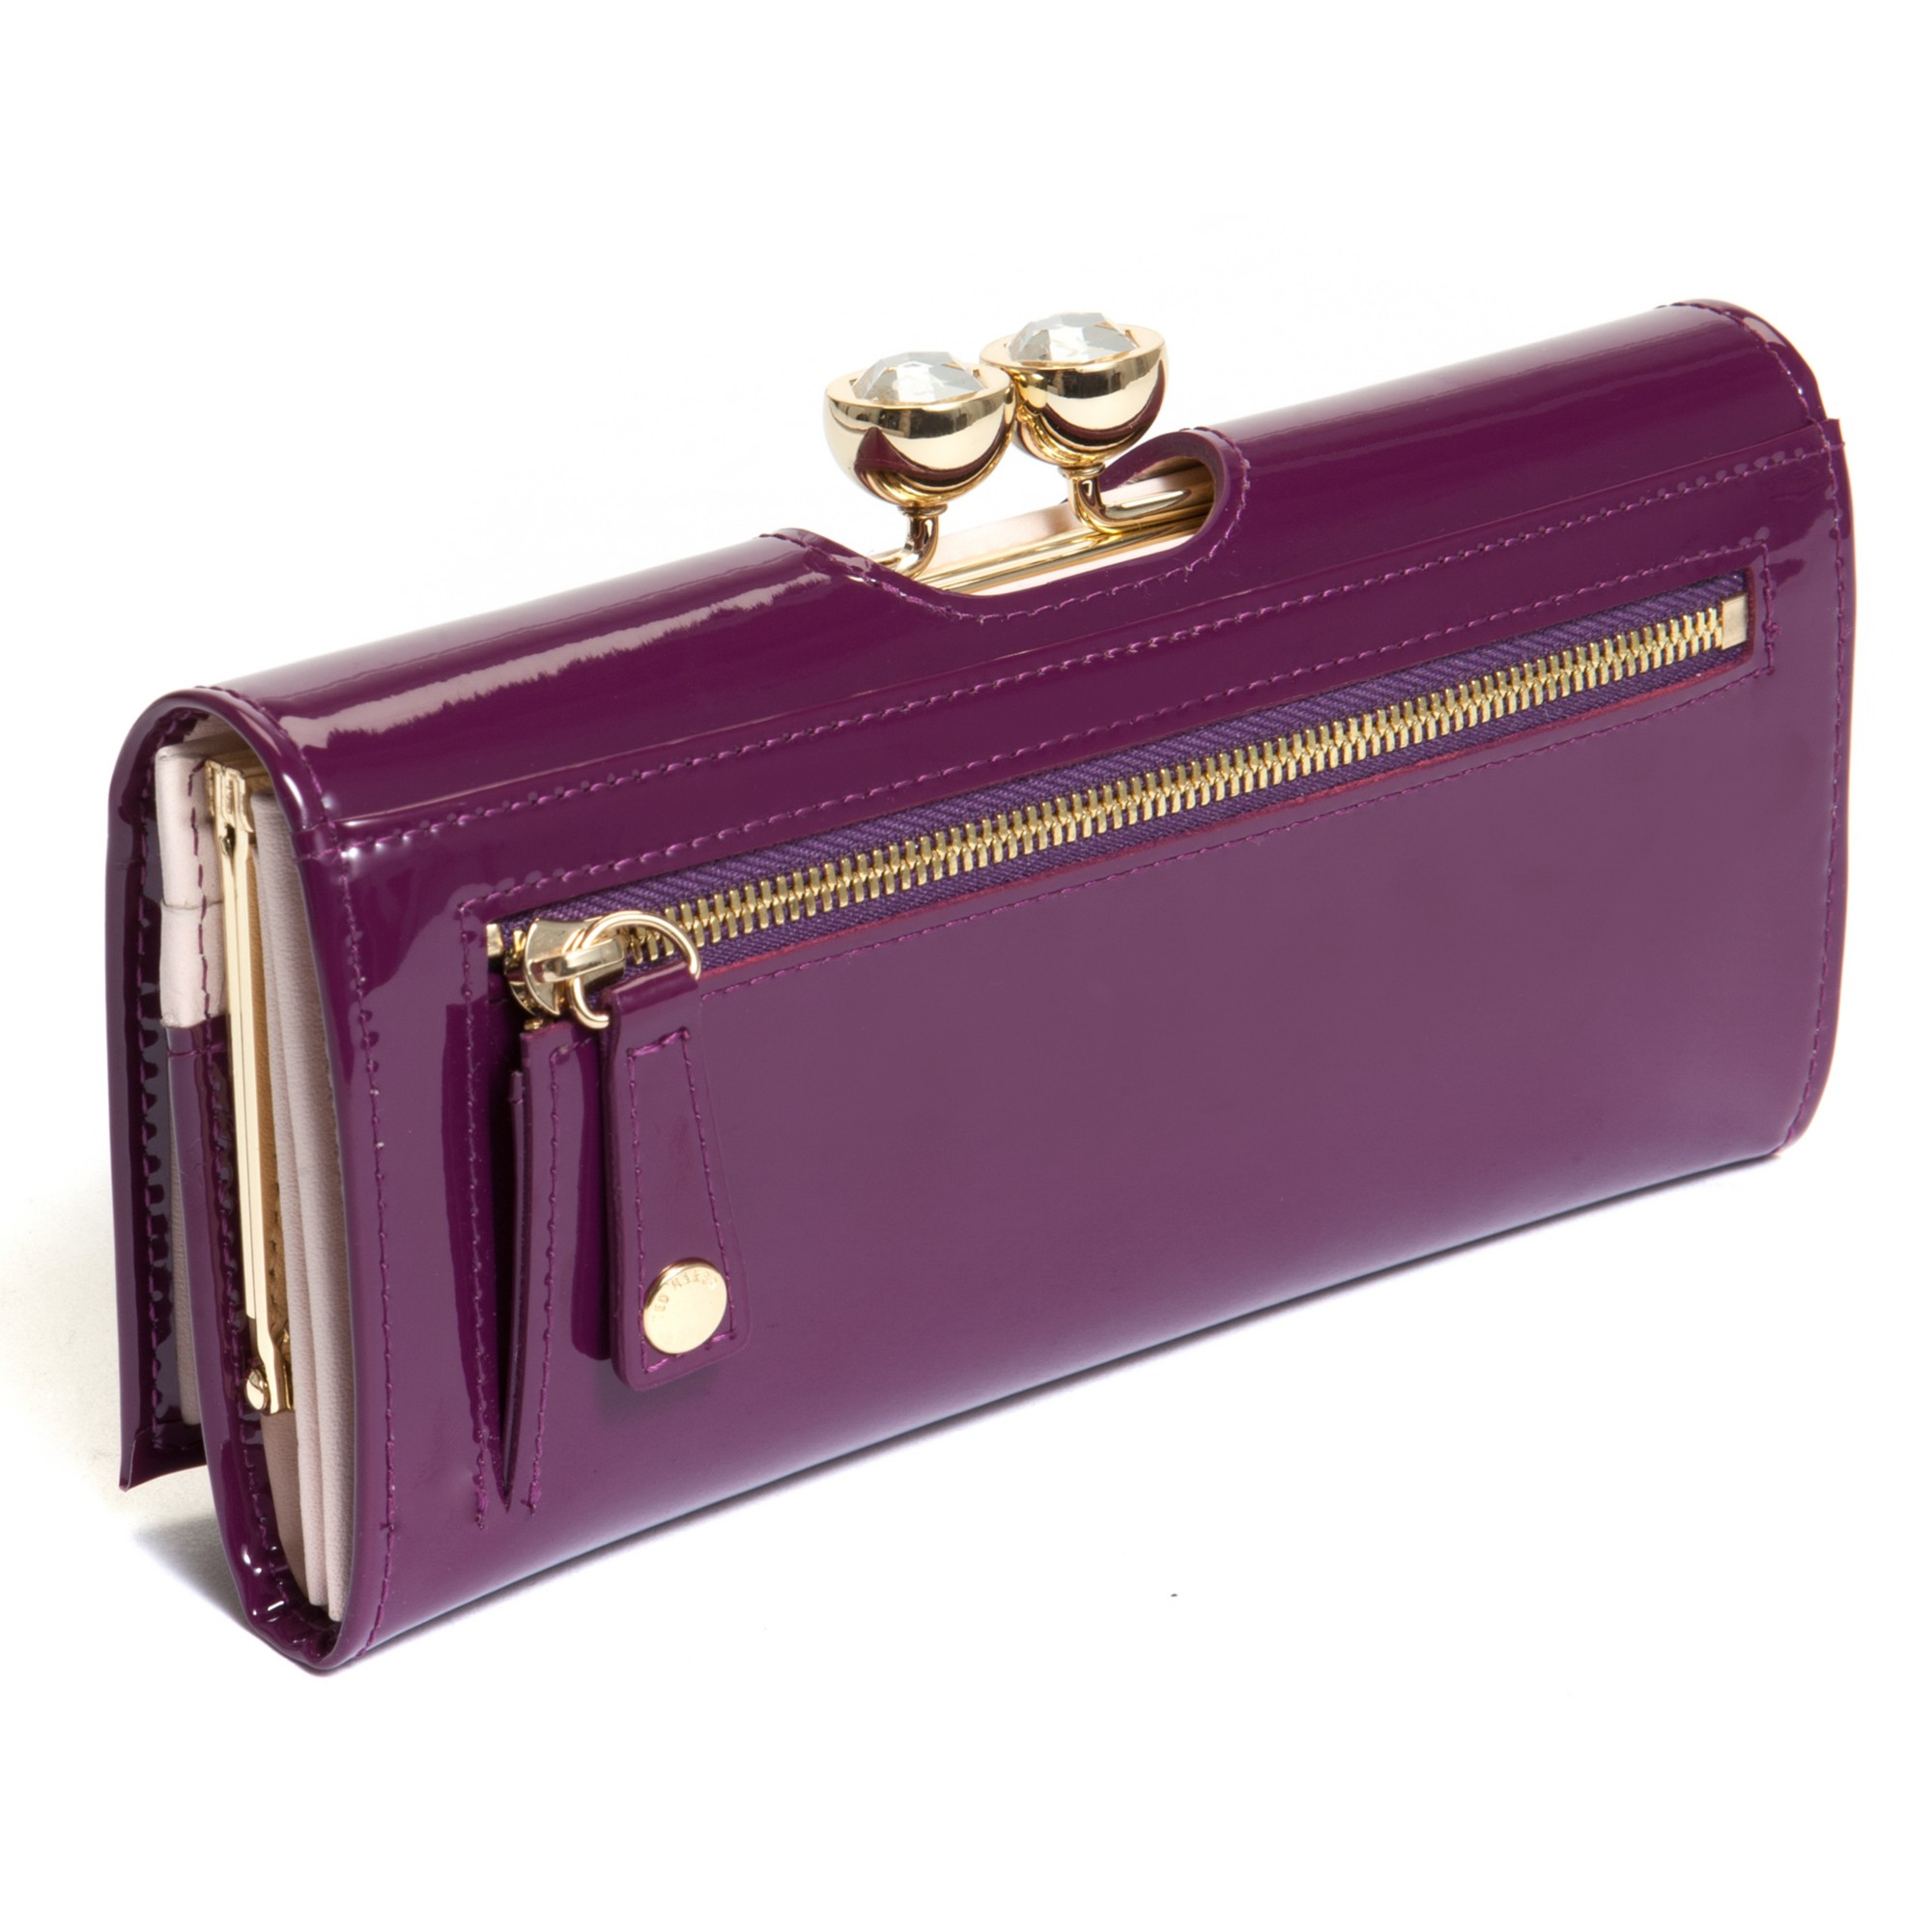 04f91dc18514 Ted Baker Deep Purple Purse Best Image Ccdbb. Ted Baker Womens Accessories  ...